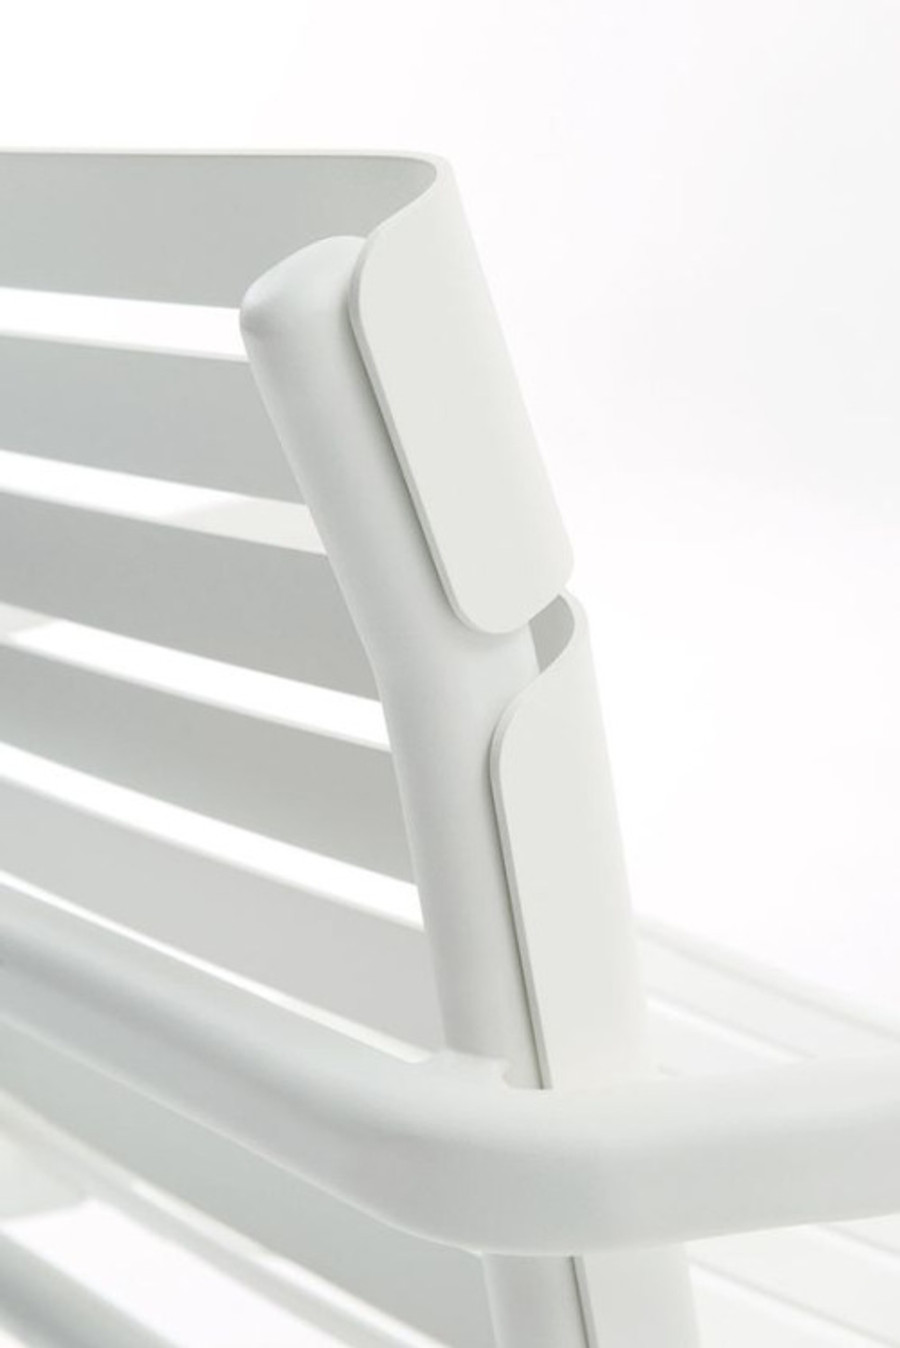 Maiori AT800 series stacking arm chair